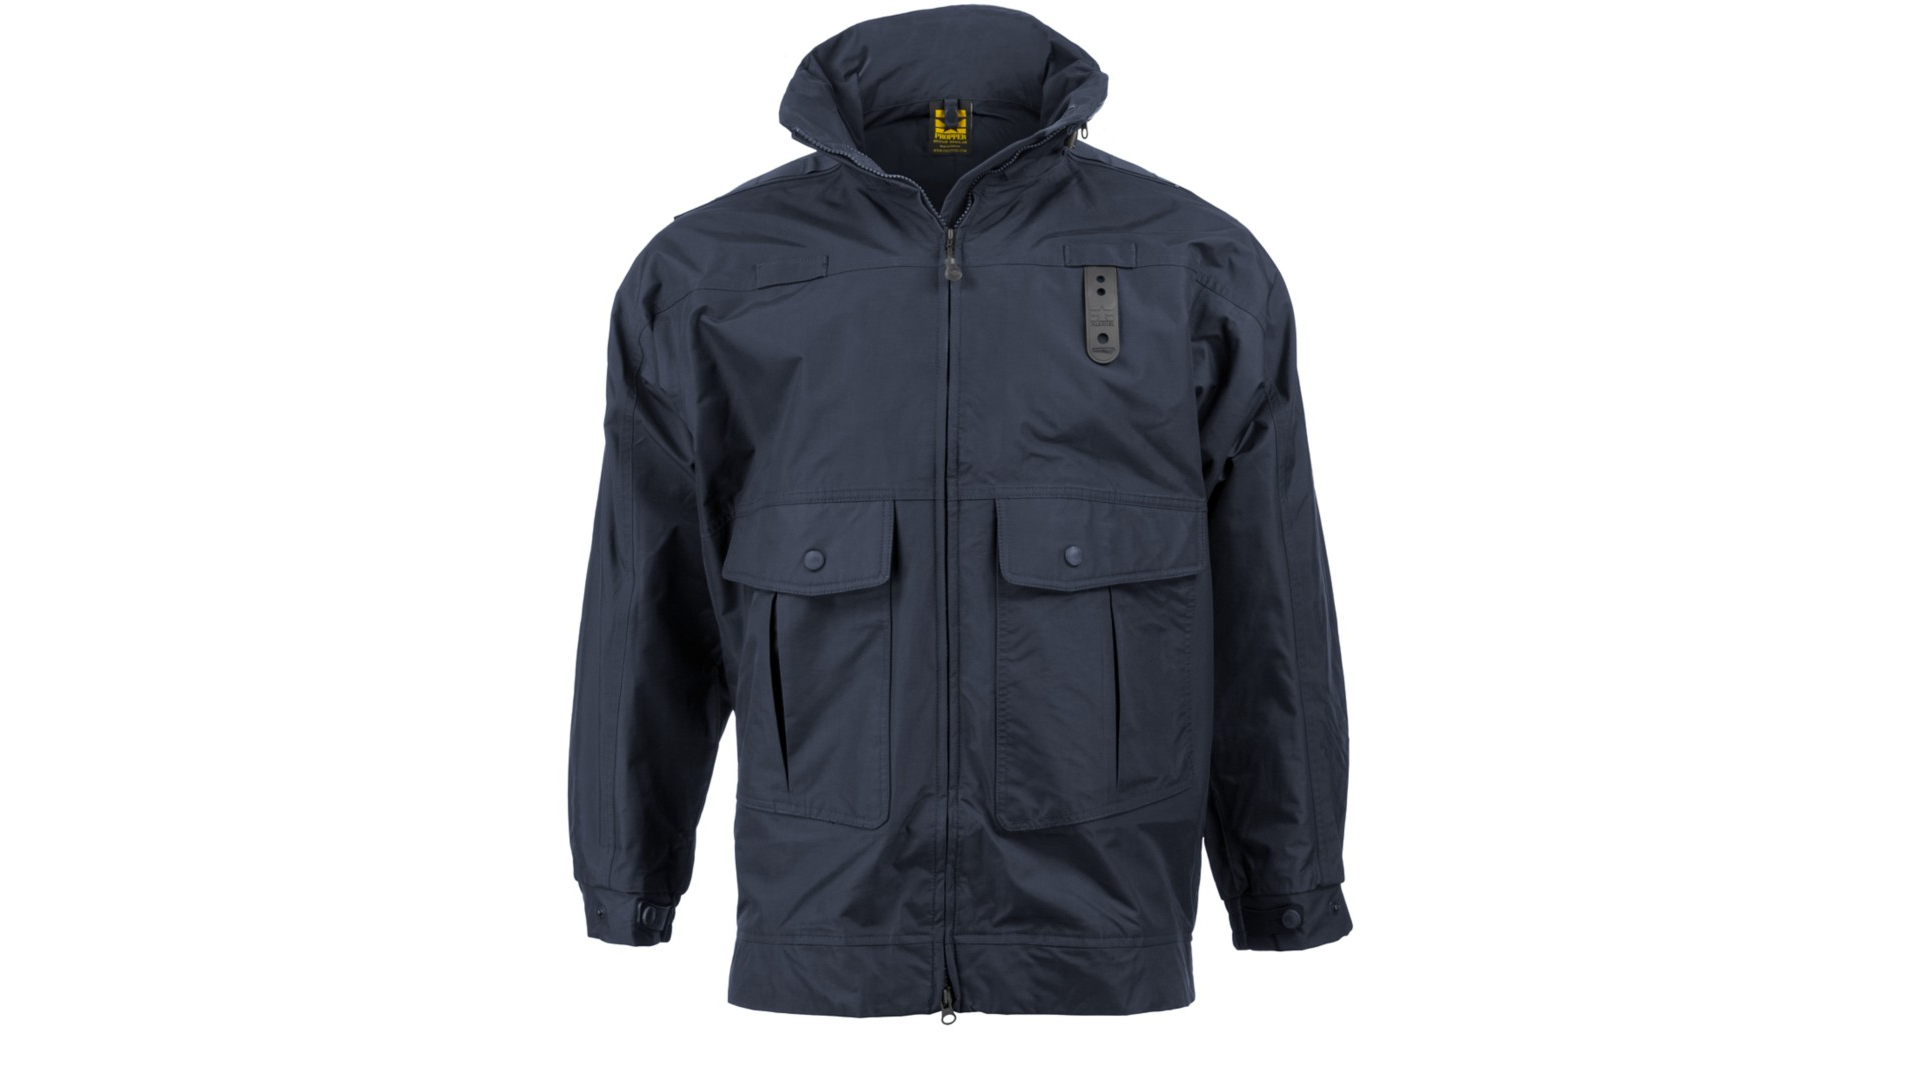 Gamma Jacket, Hood Stowed